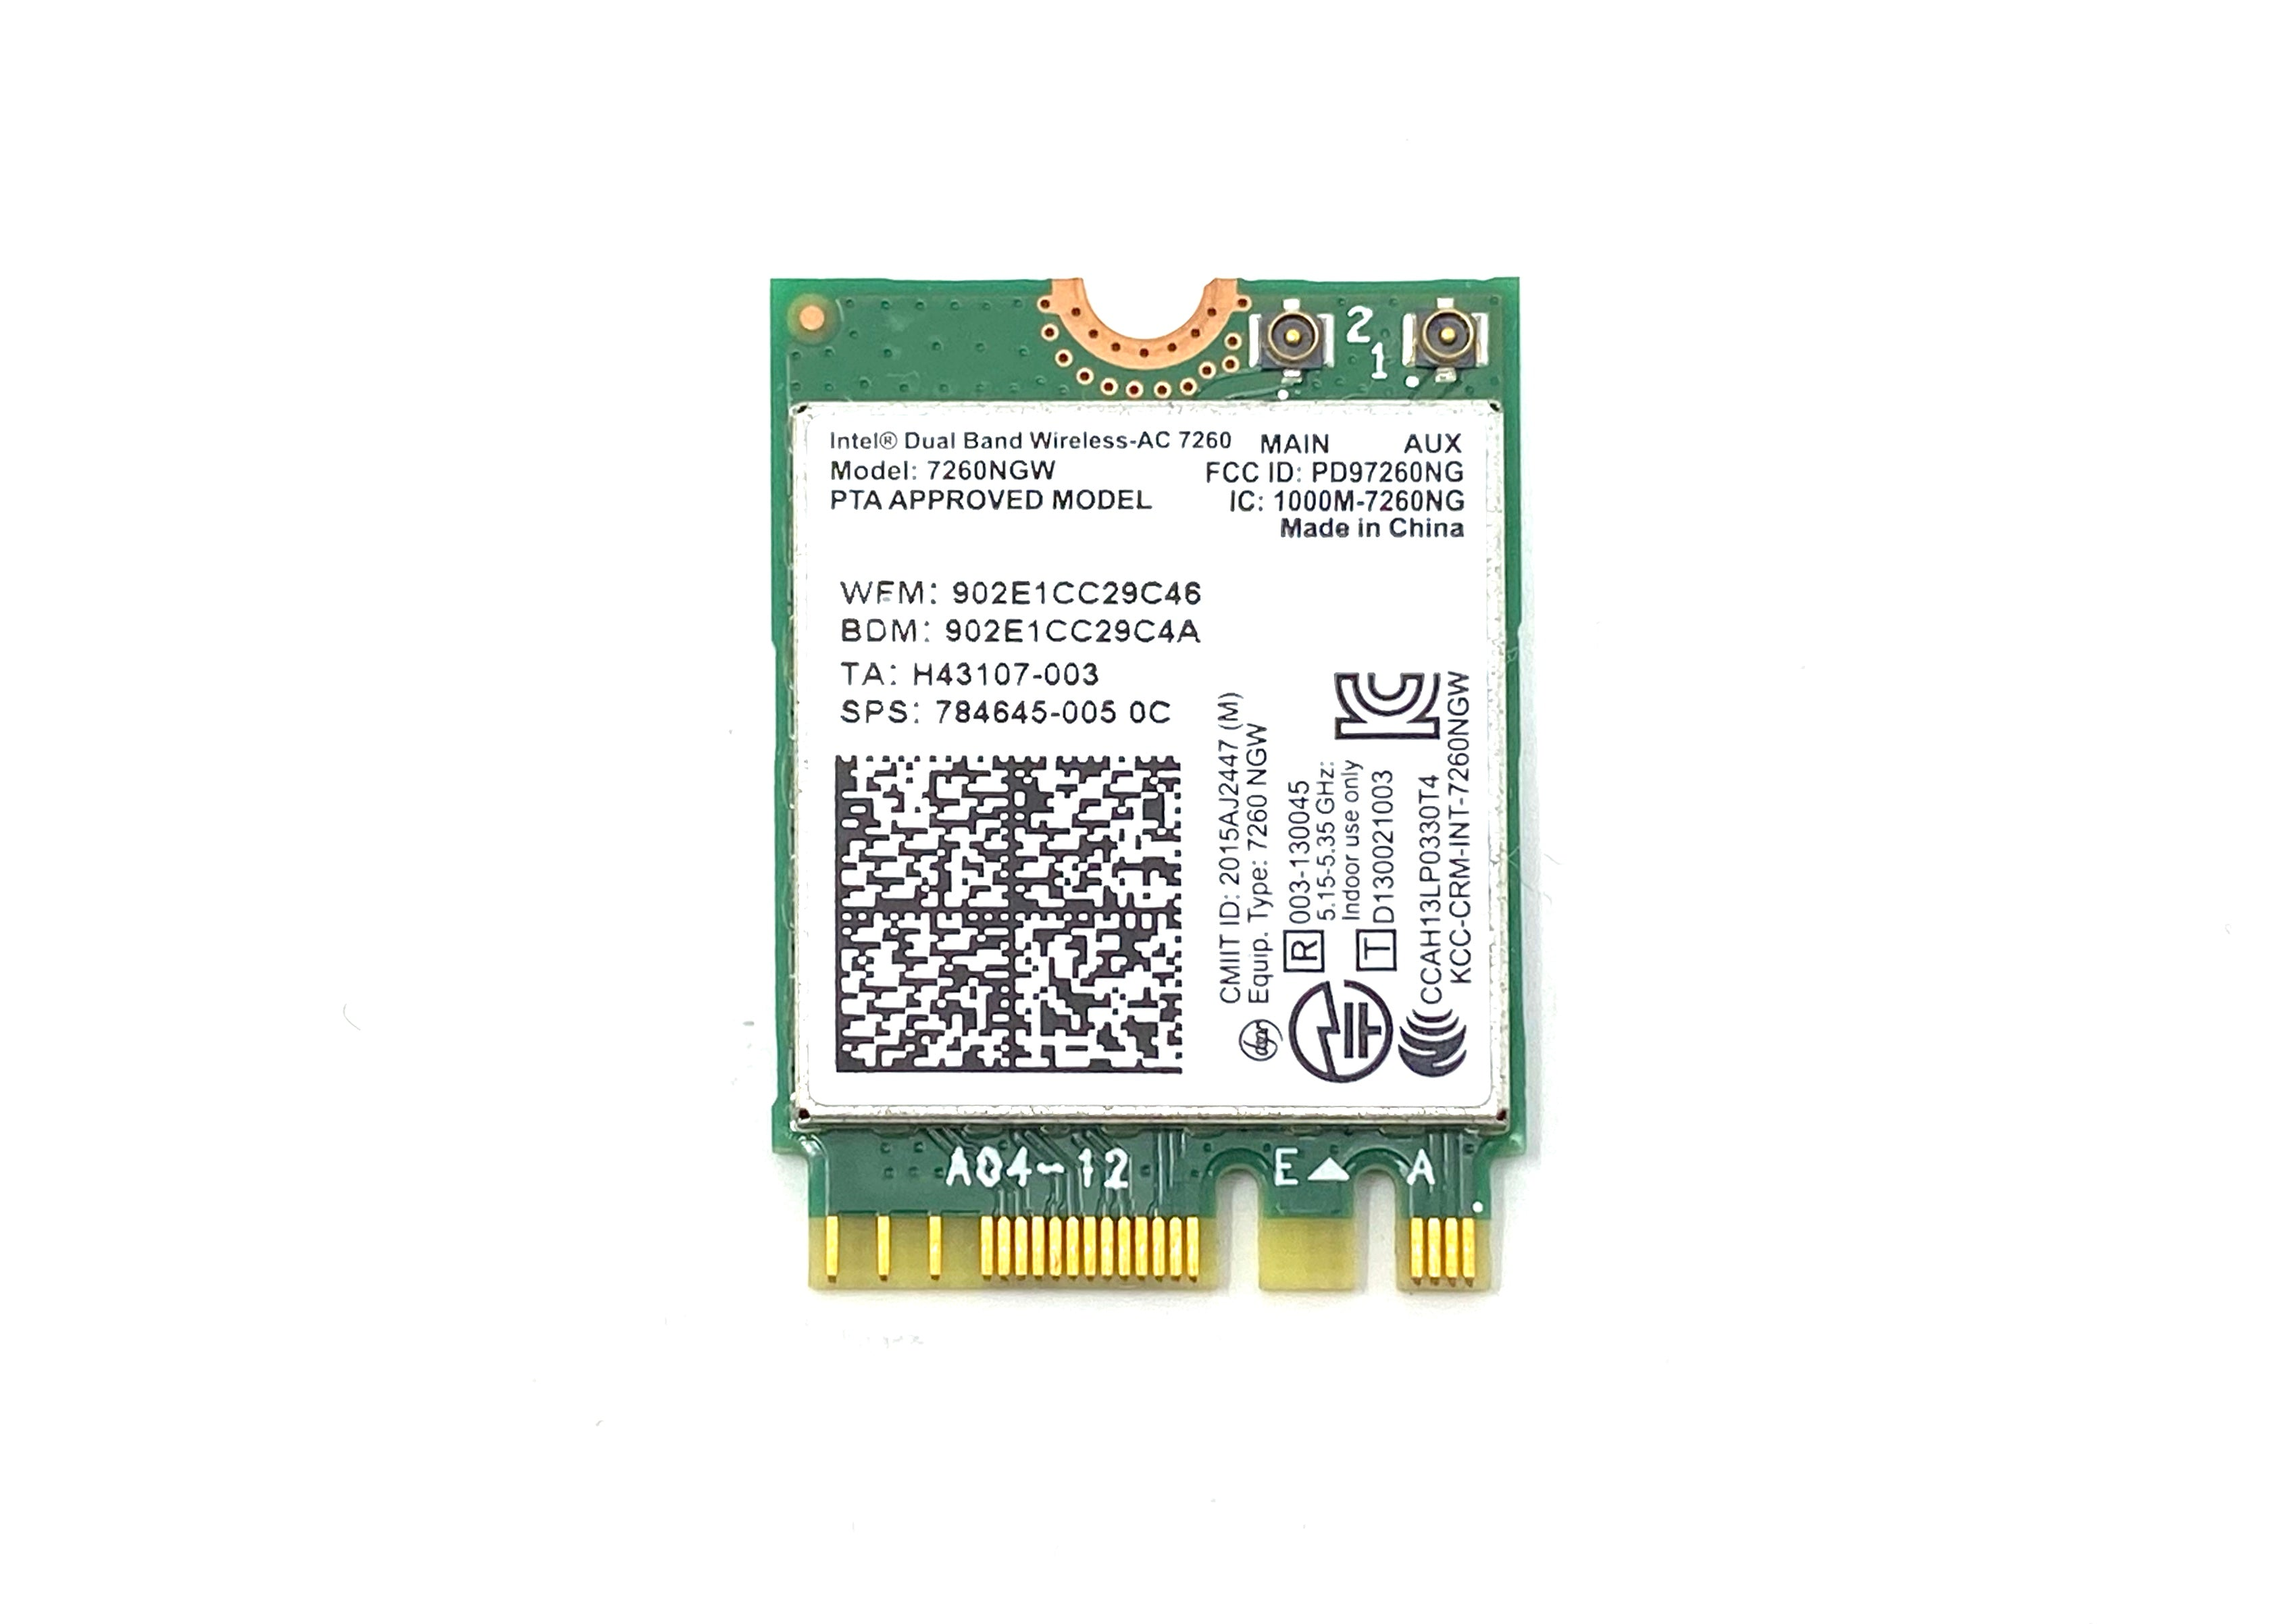 Intel Dual Band Wireless-AC 7260 802.11 ac 2x2 WiFi and Bluetooth 4.0 combination WLAN adapter - 784645-005